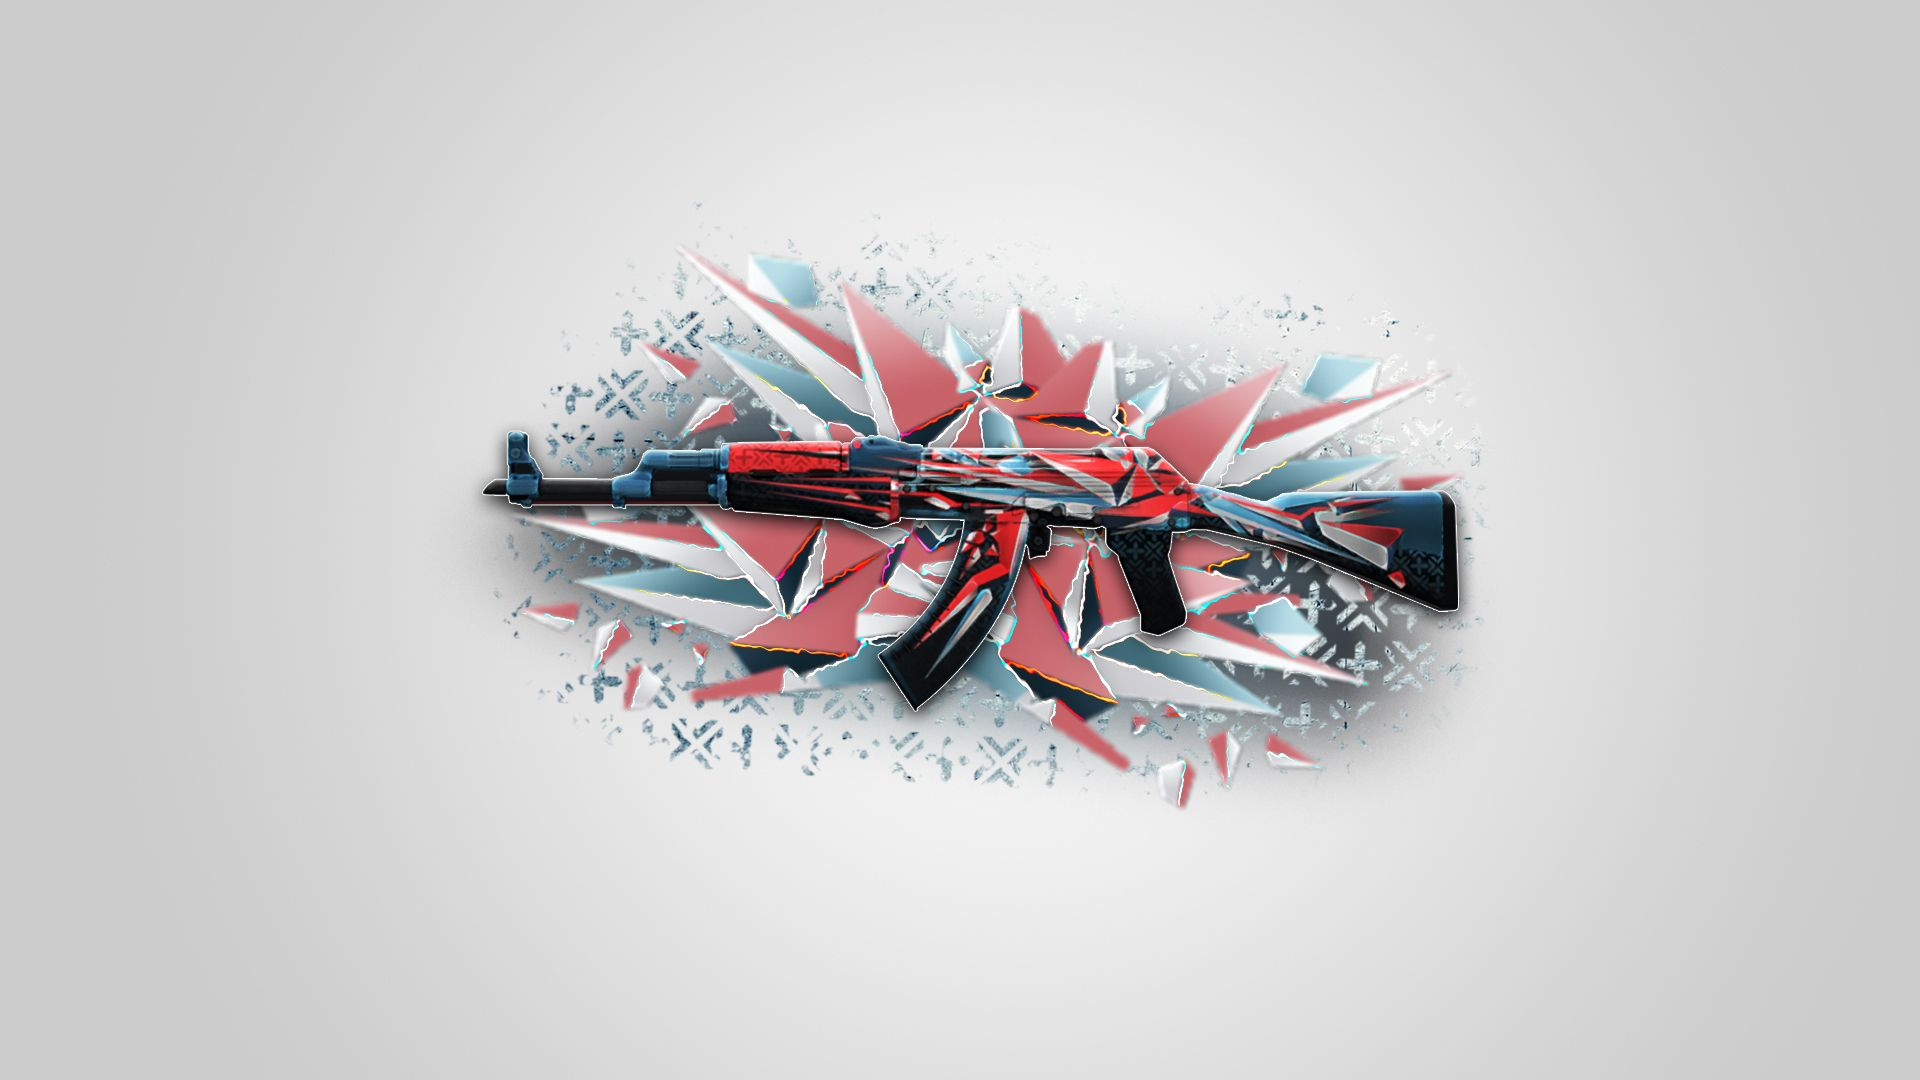 Csgo Ak 47 Point Disarray Wallpaper 1080p Imgur Android Go